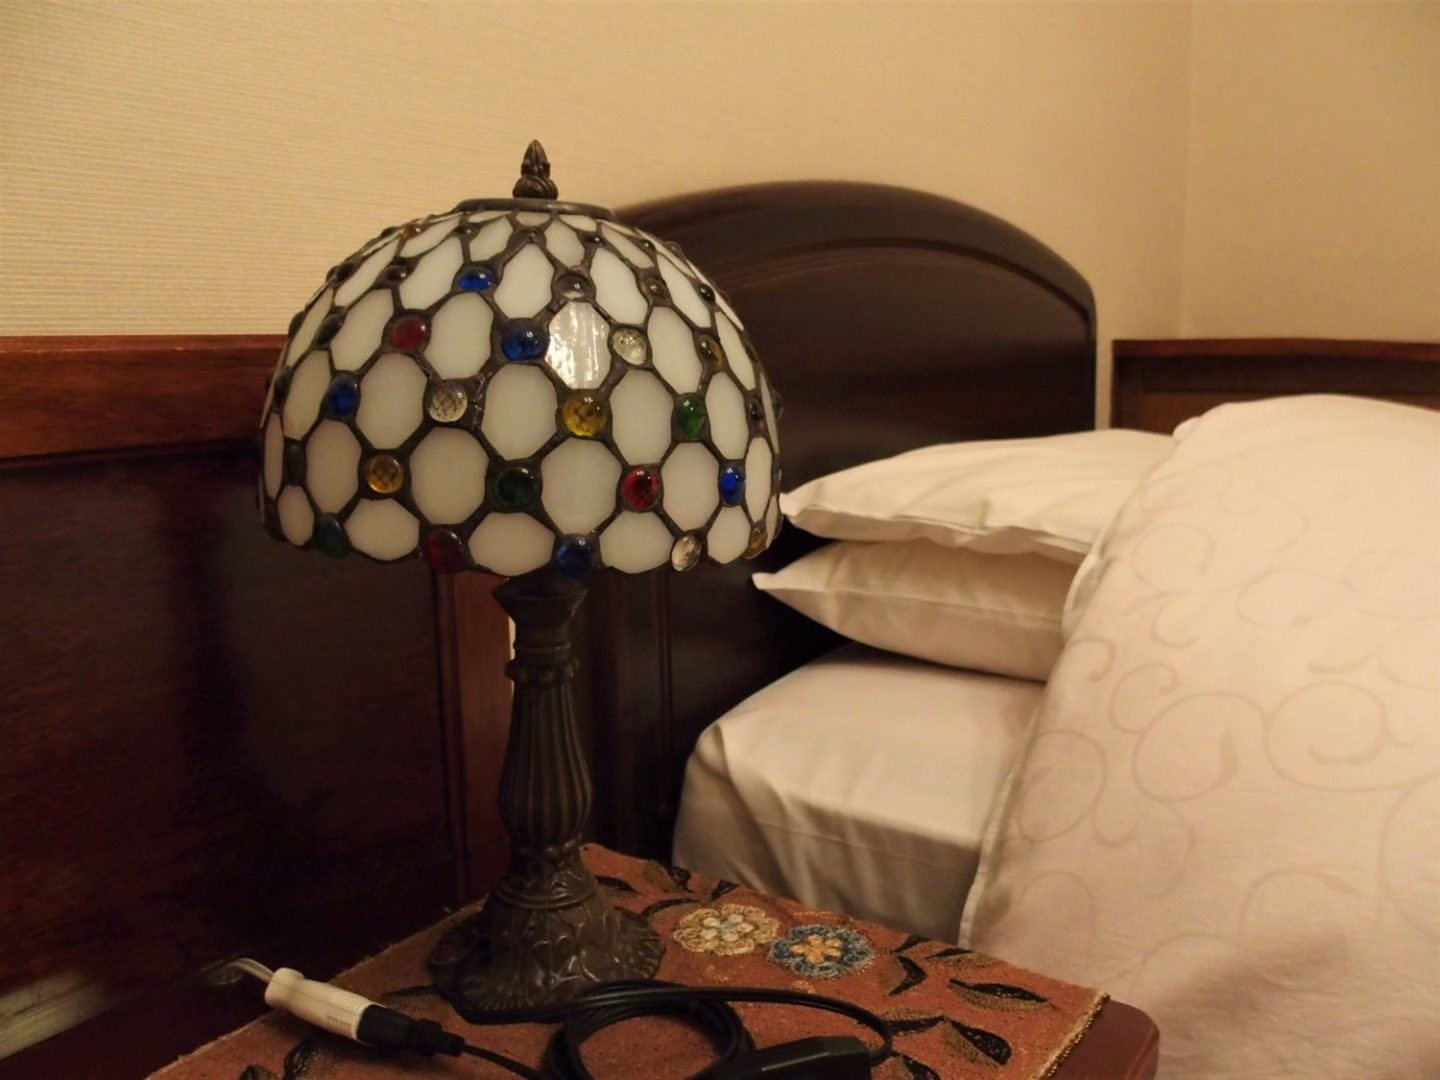 A lamp placed right beside beds at Ochiairo Murakami